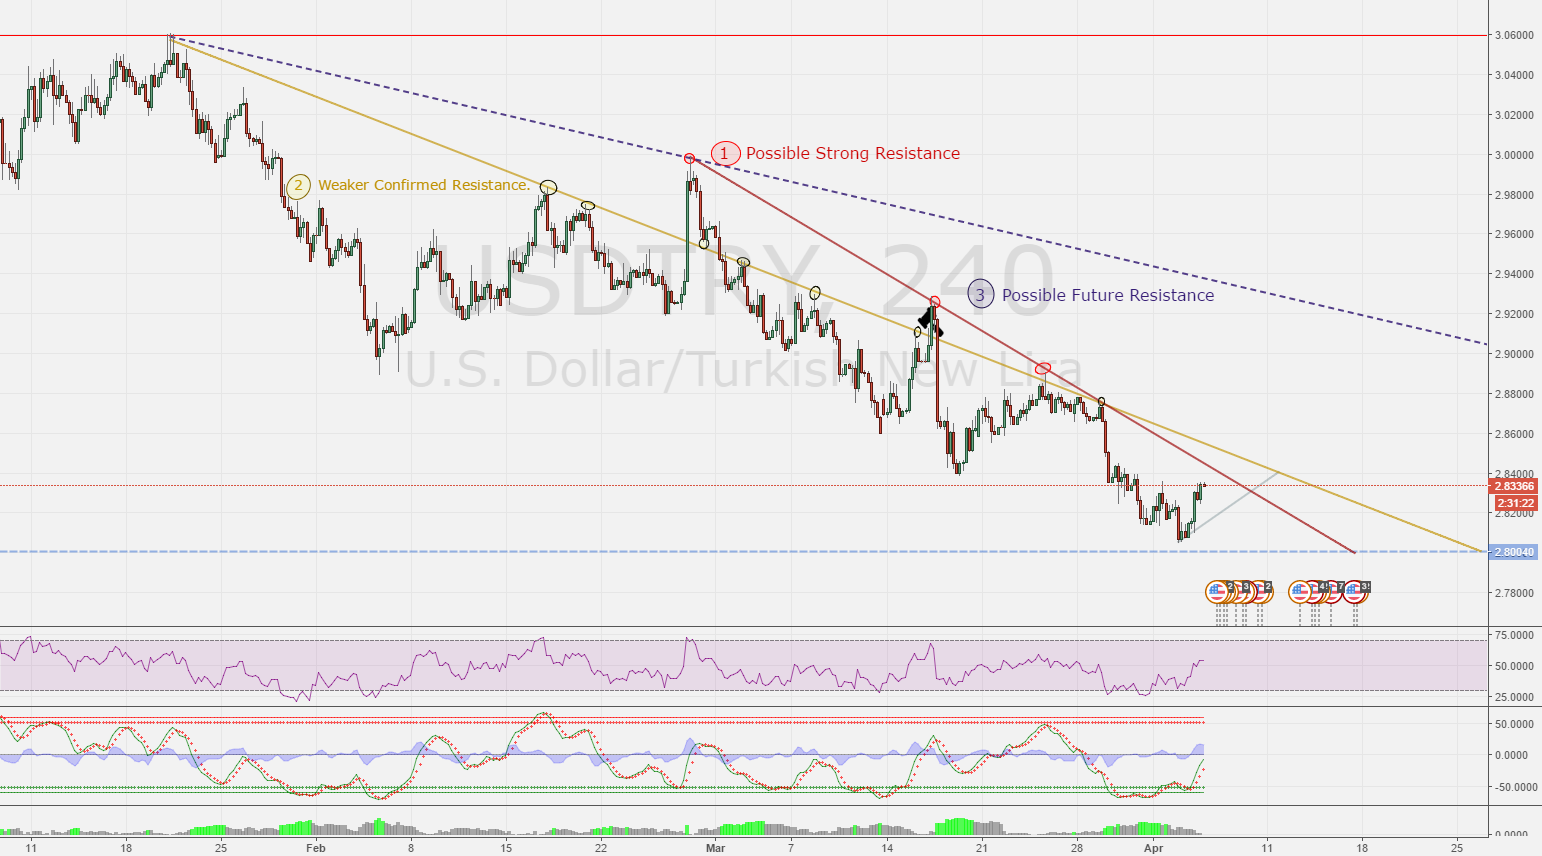 USDTRY Possible Short and Long-Term Resistances